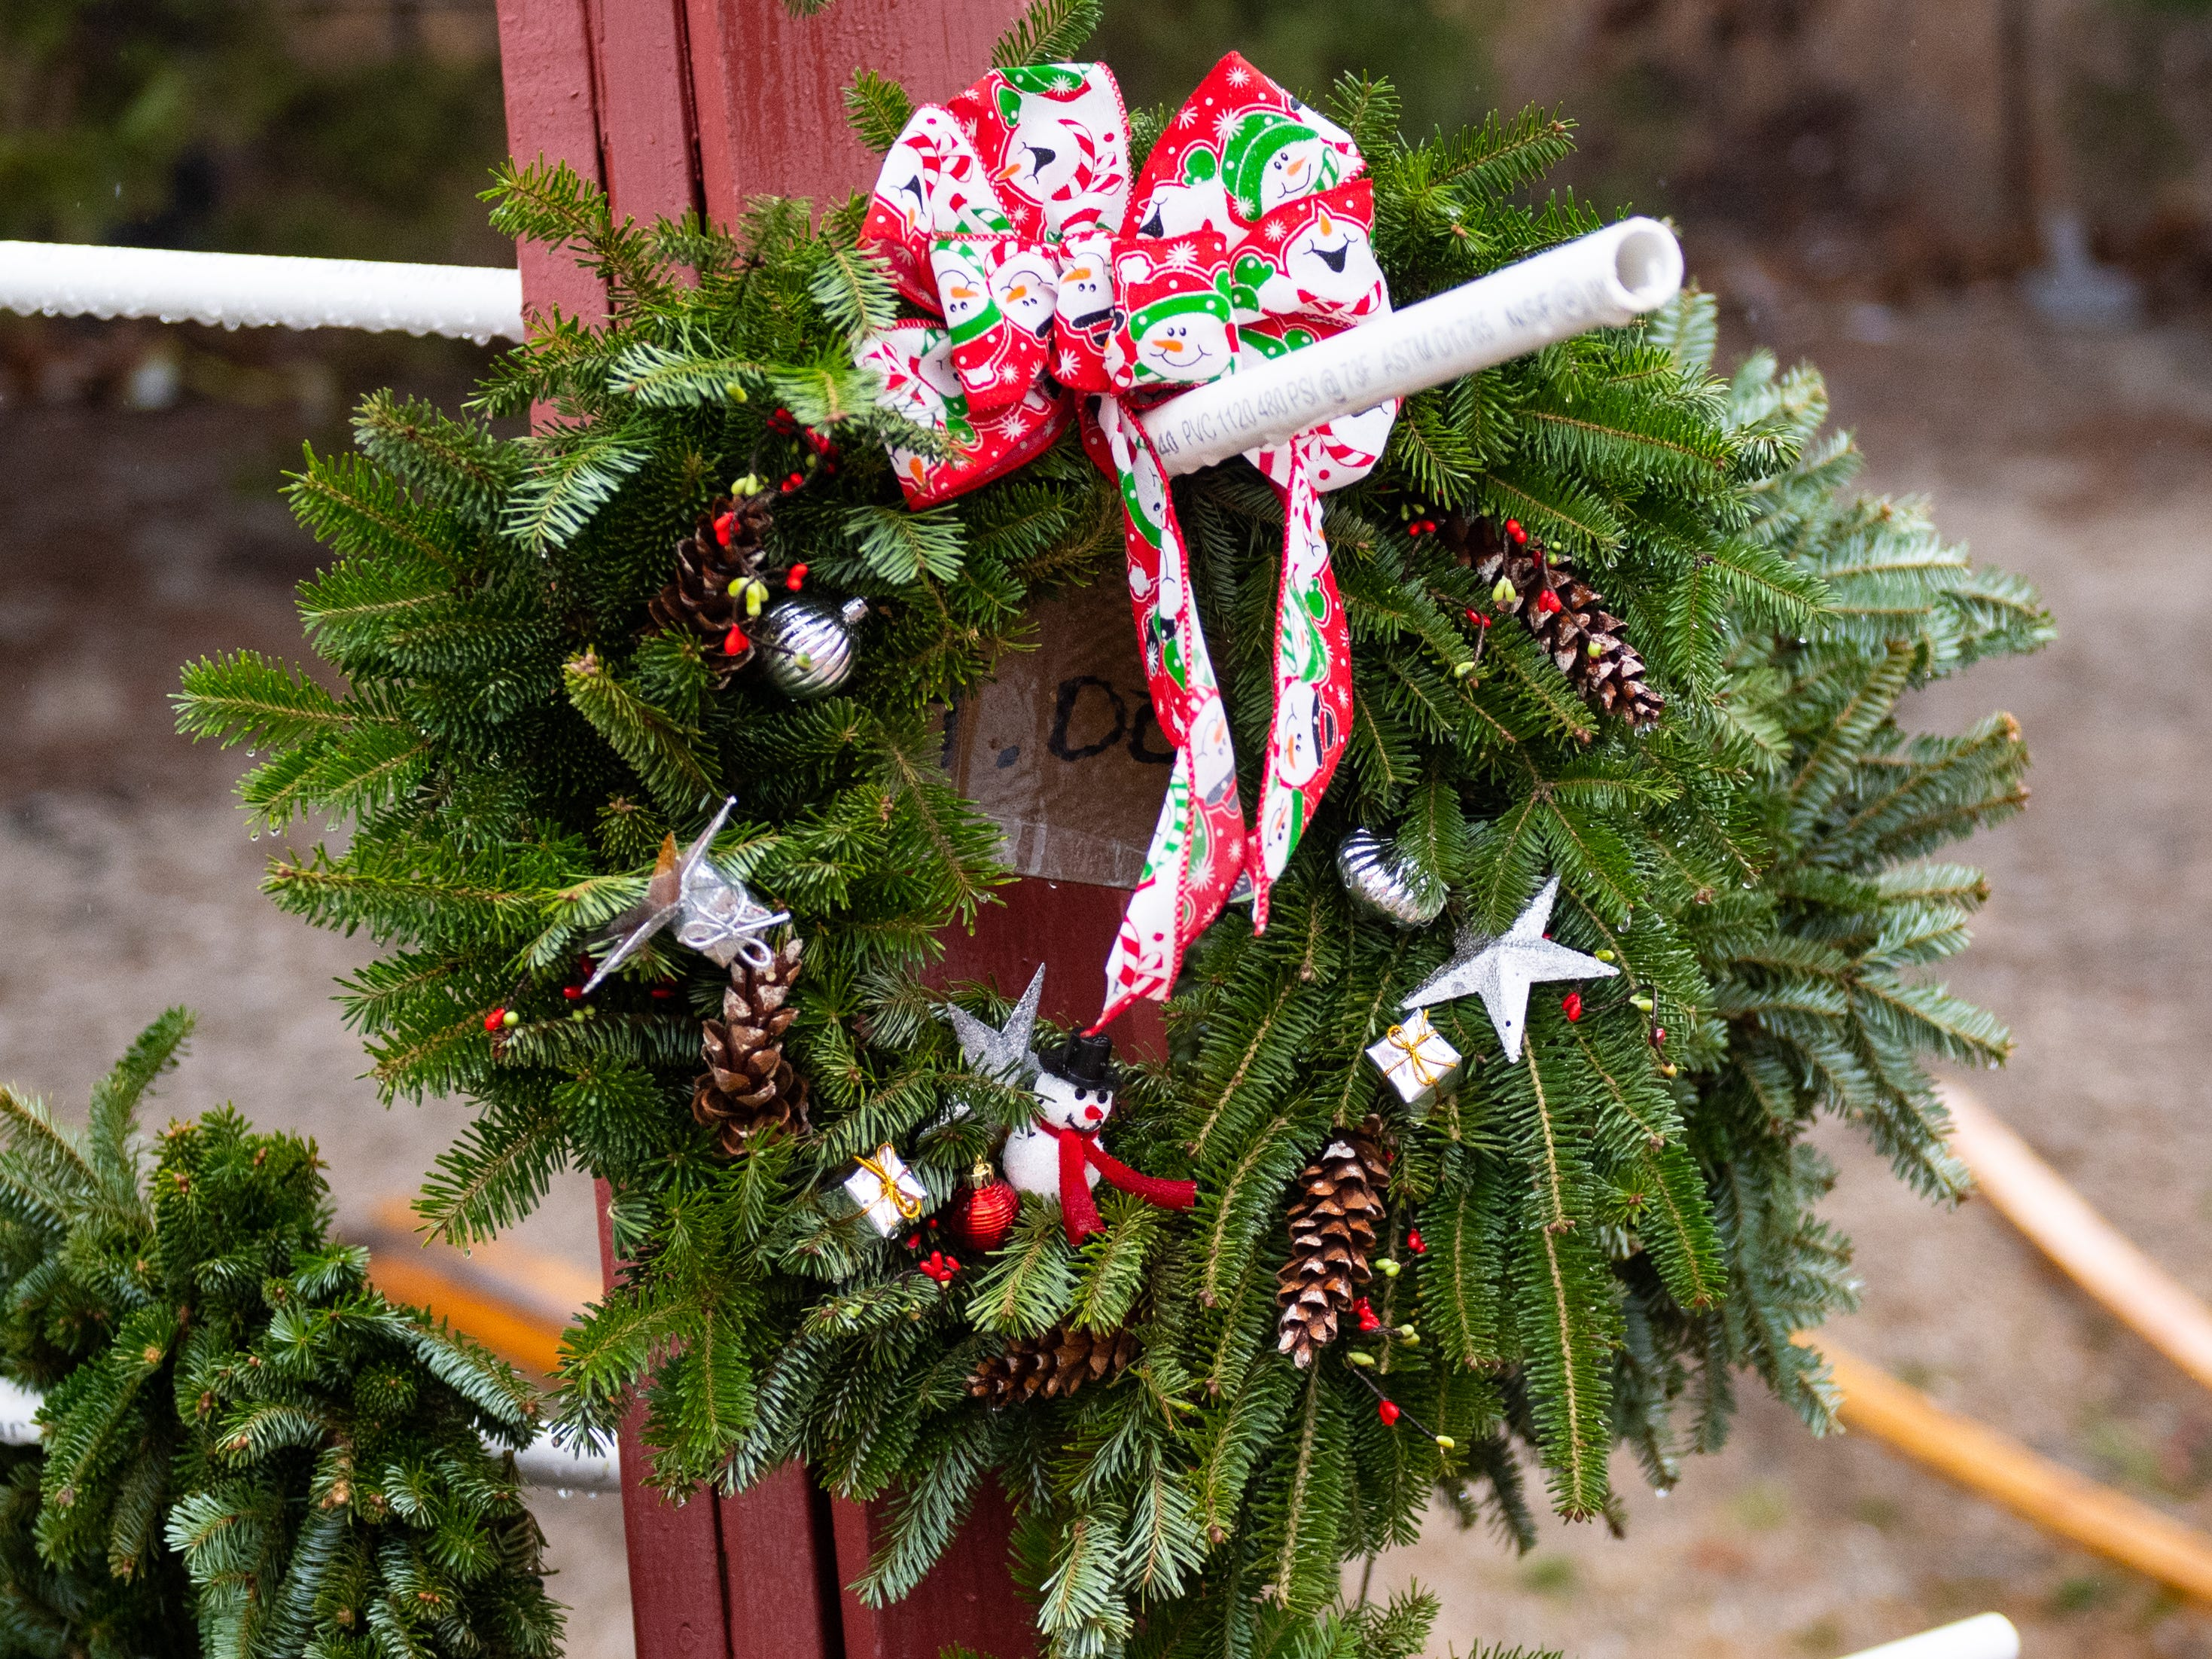 The Food Bank's Christmas Tree Sale also sells wreaths to go alone with the trees, December 15, 2018.